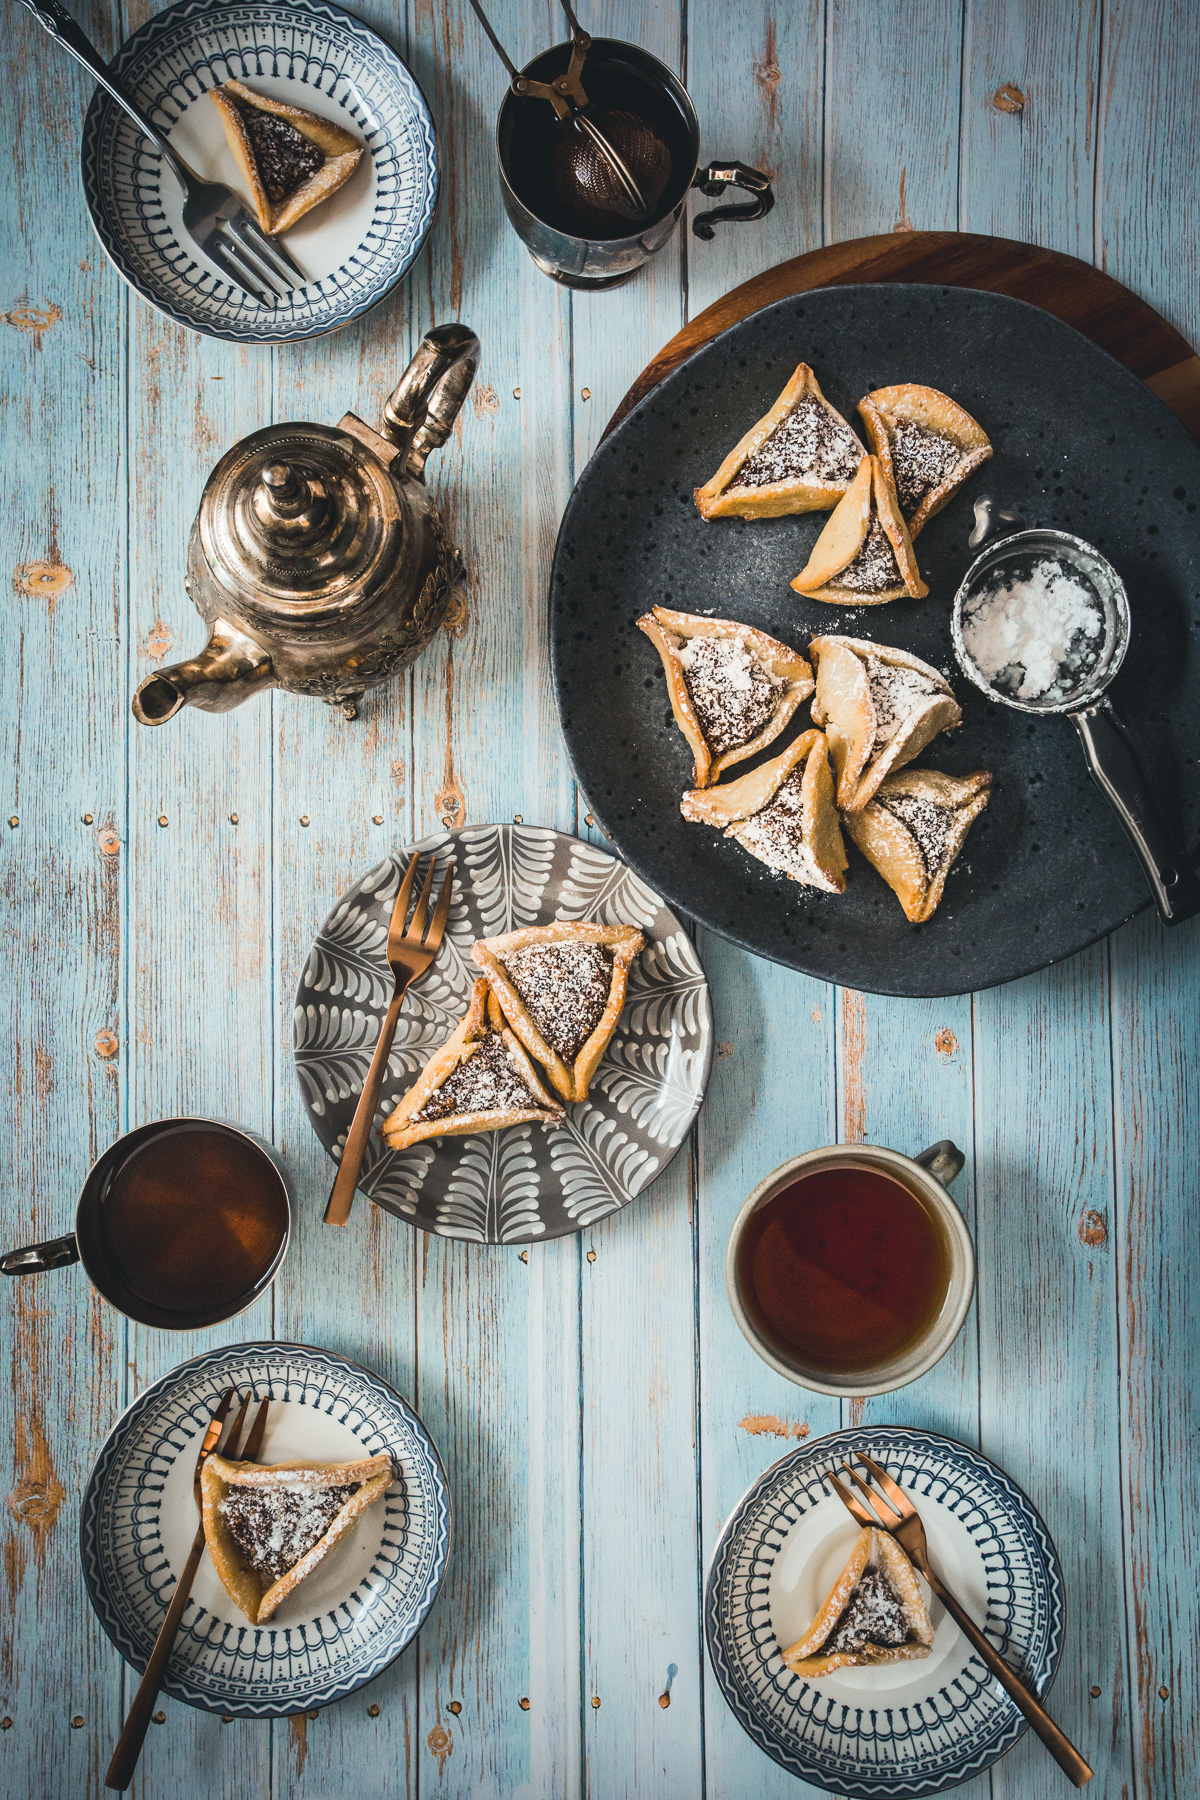 tablescape with hamantaschen and tea